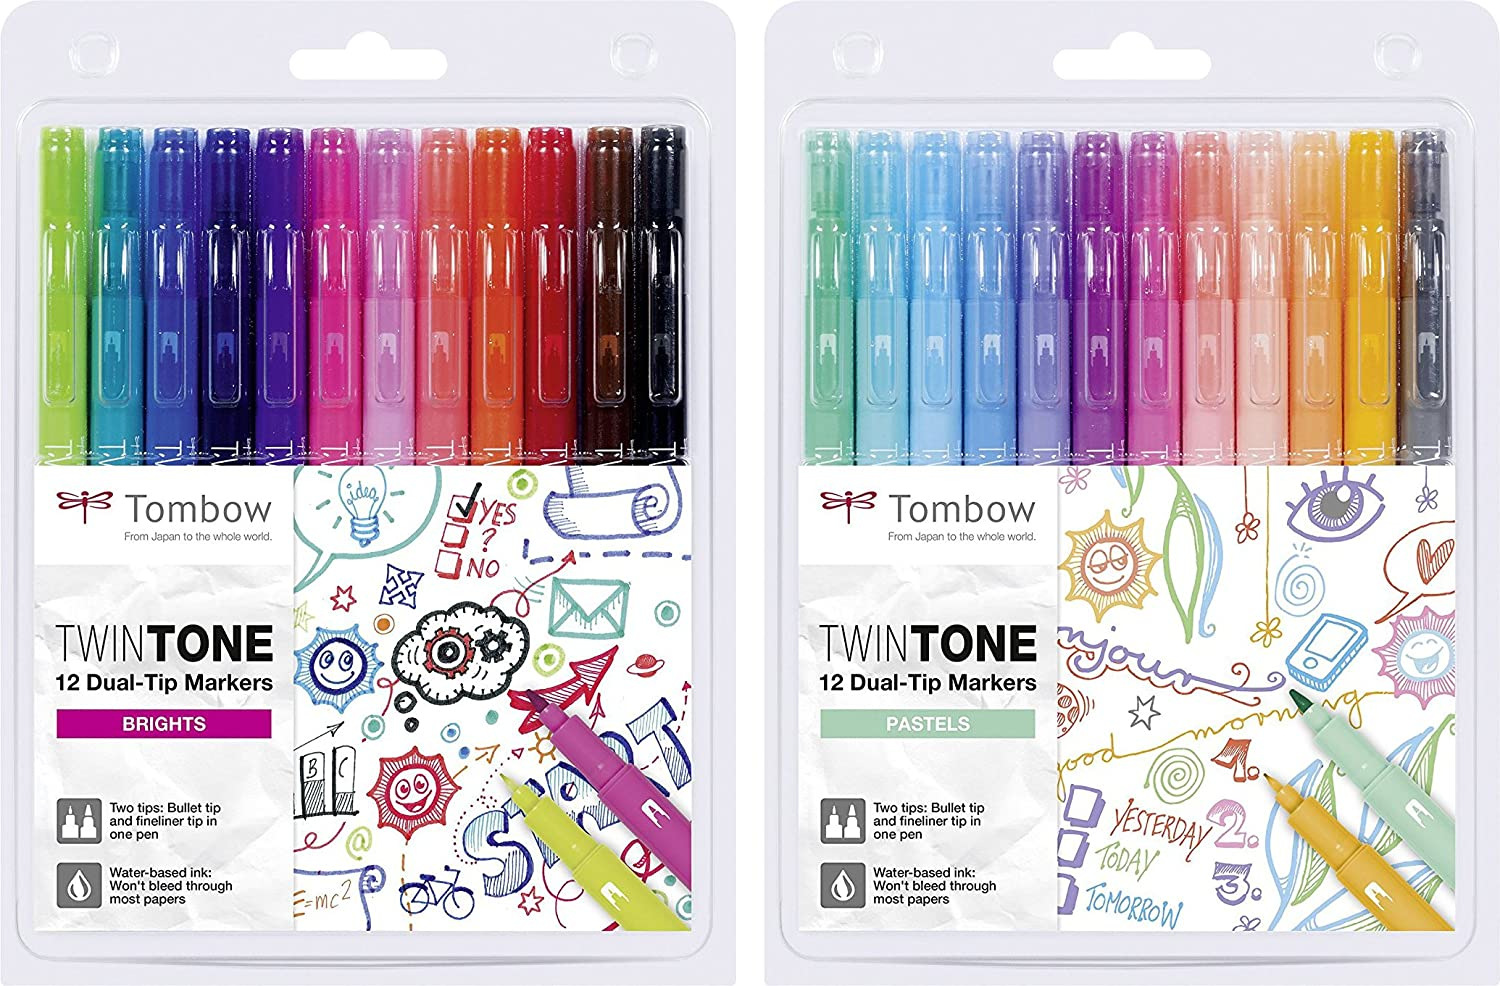 Tombow WS-PK-12P-2 Twintone Marker Set 12-Pack, Dual-tip, pastel